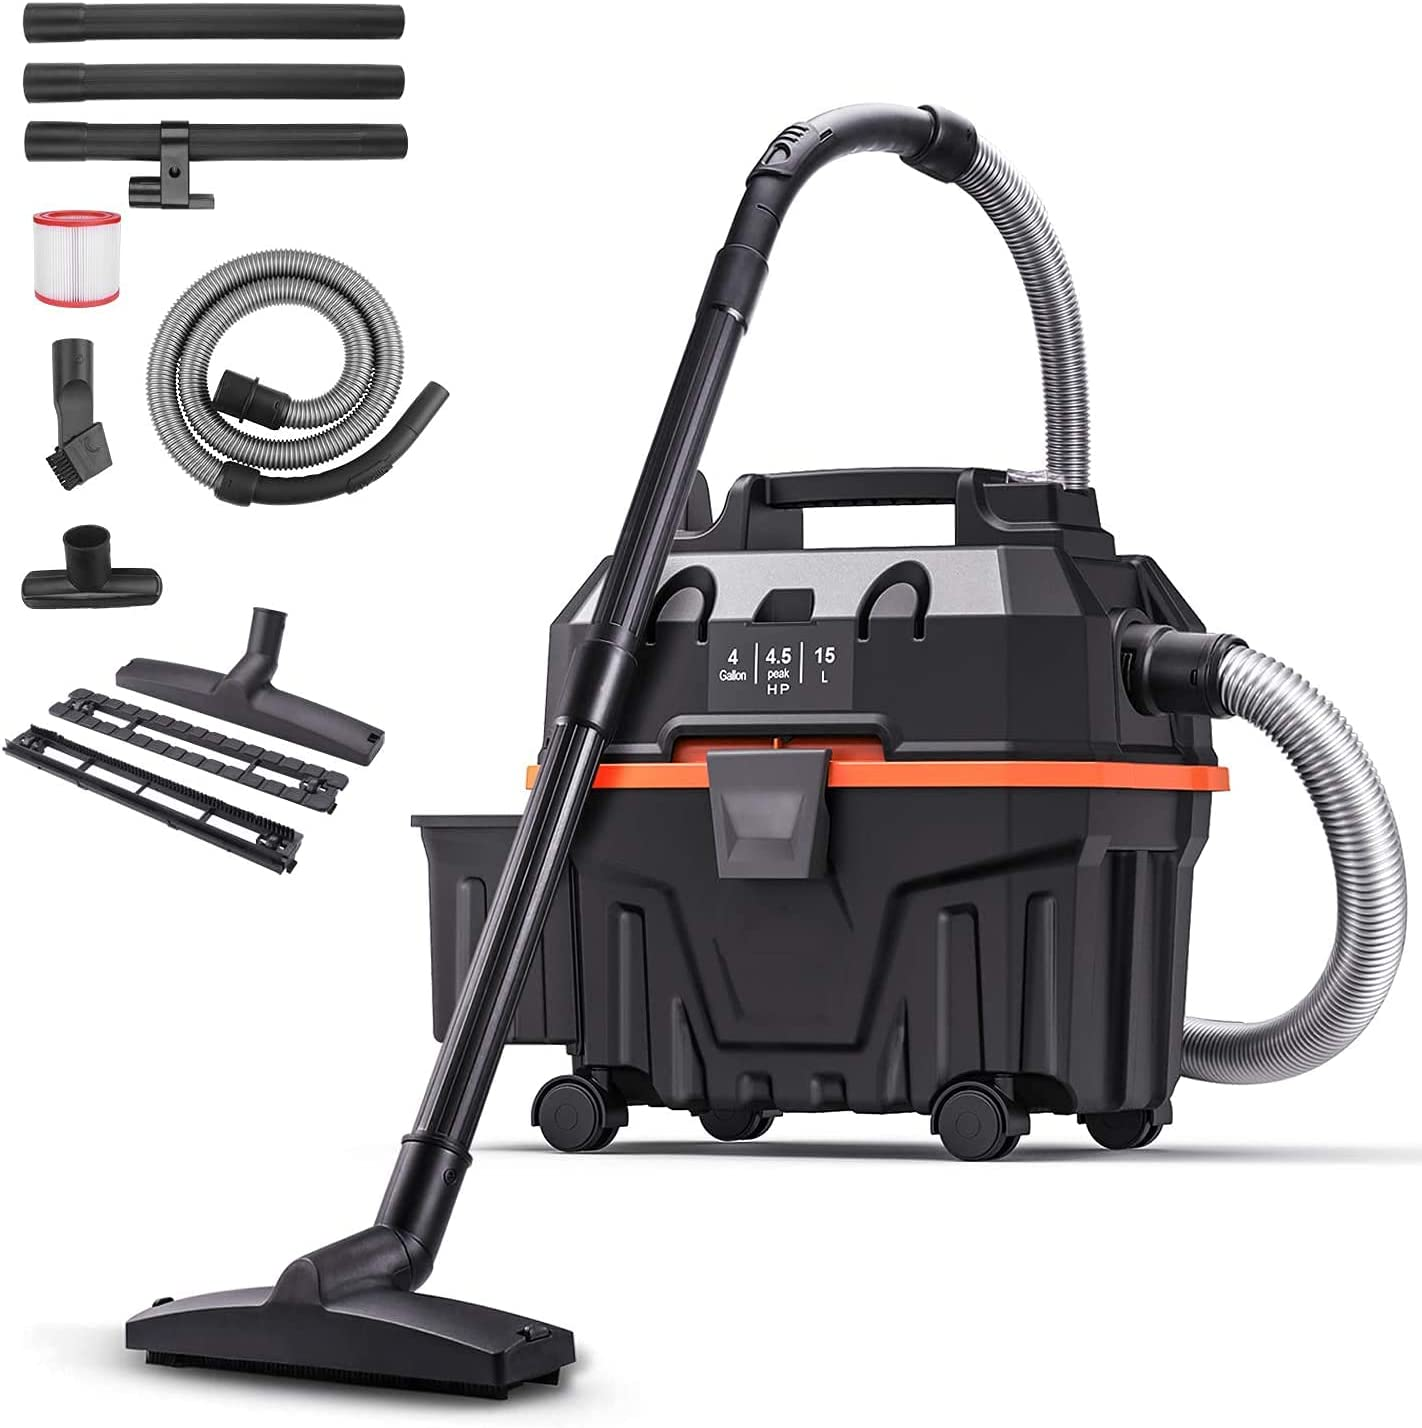 Tacklife 3-in-1 4 Gallon 4.5HP Wet Dry Shop Vacuum $34.99 Coupon